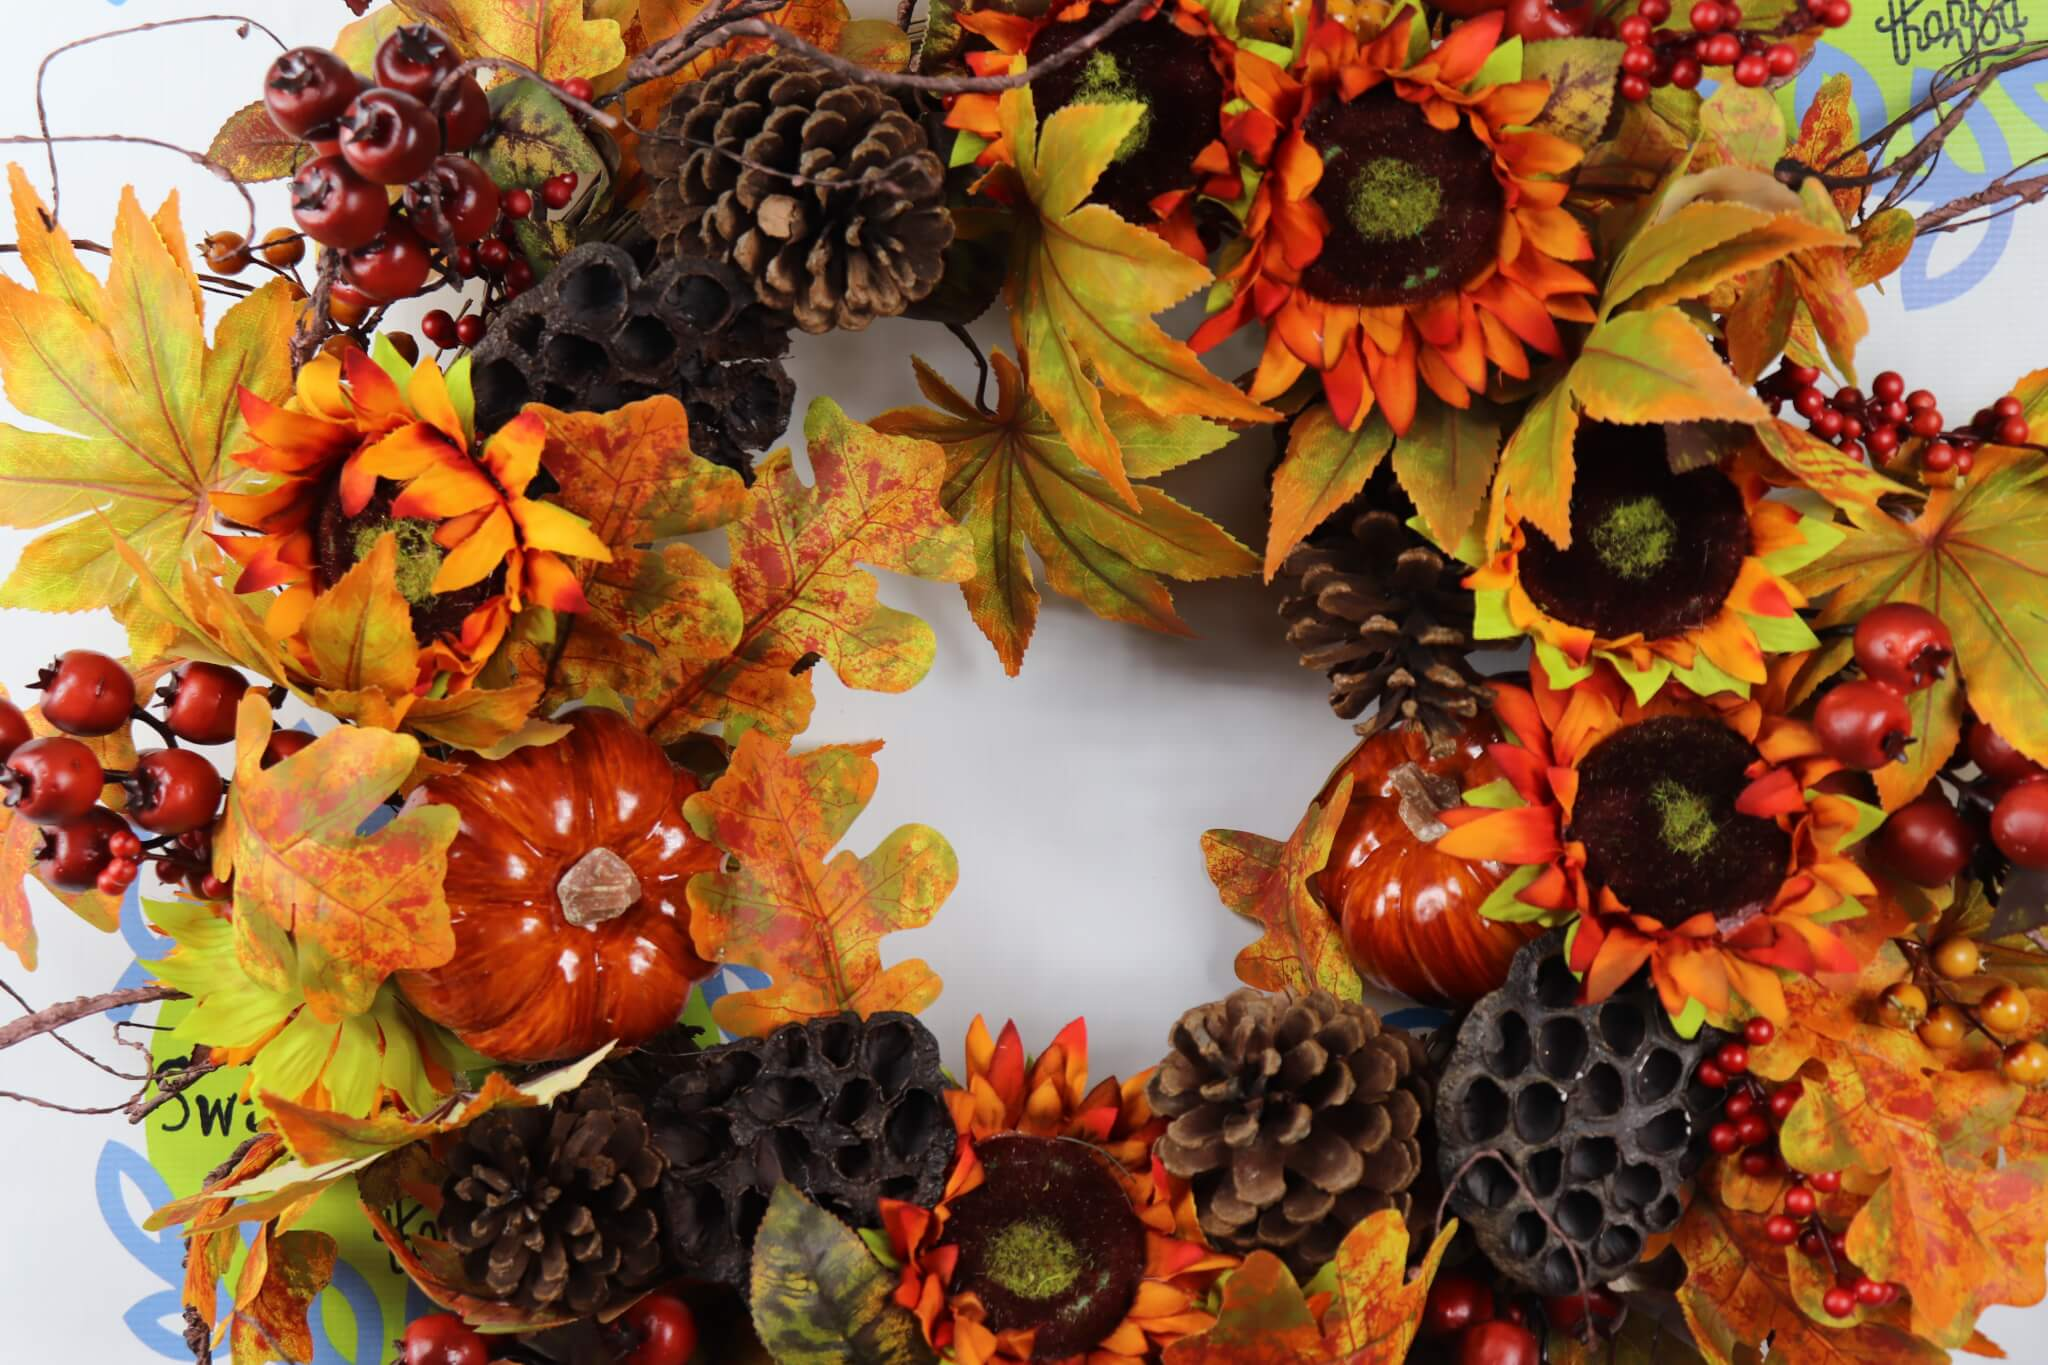 Fall XL Grapevine Sunflower Wreath Home Decor Wreaths